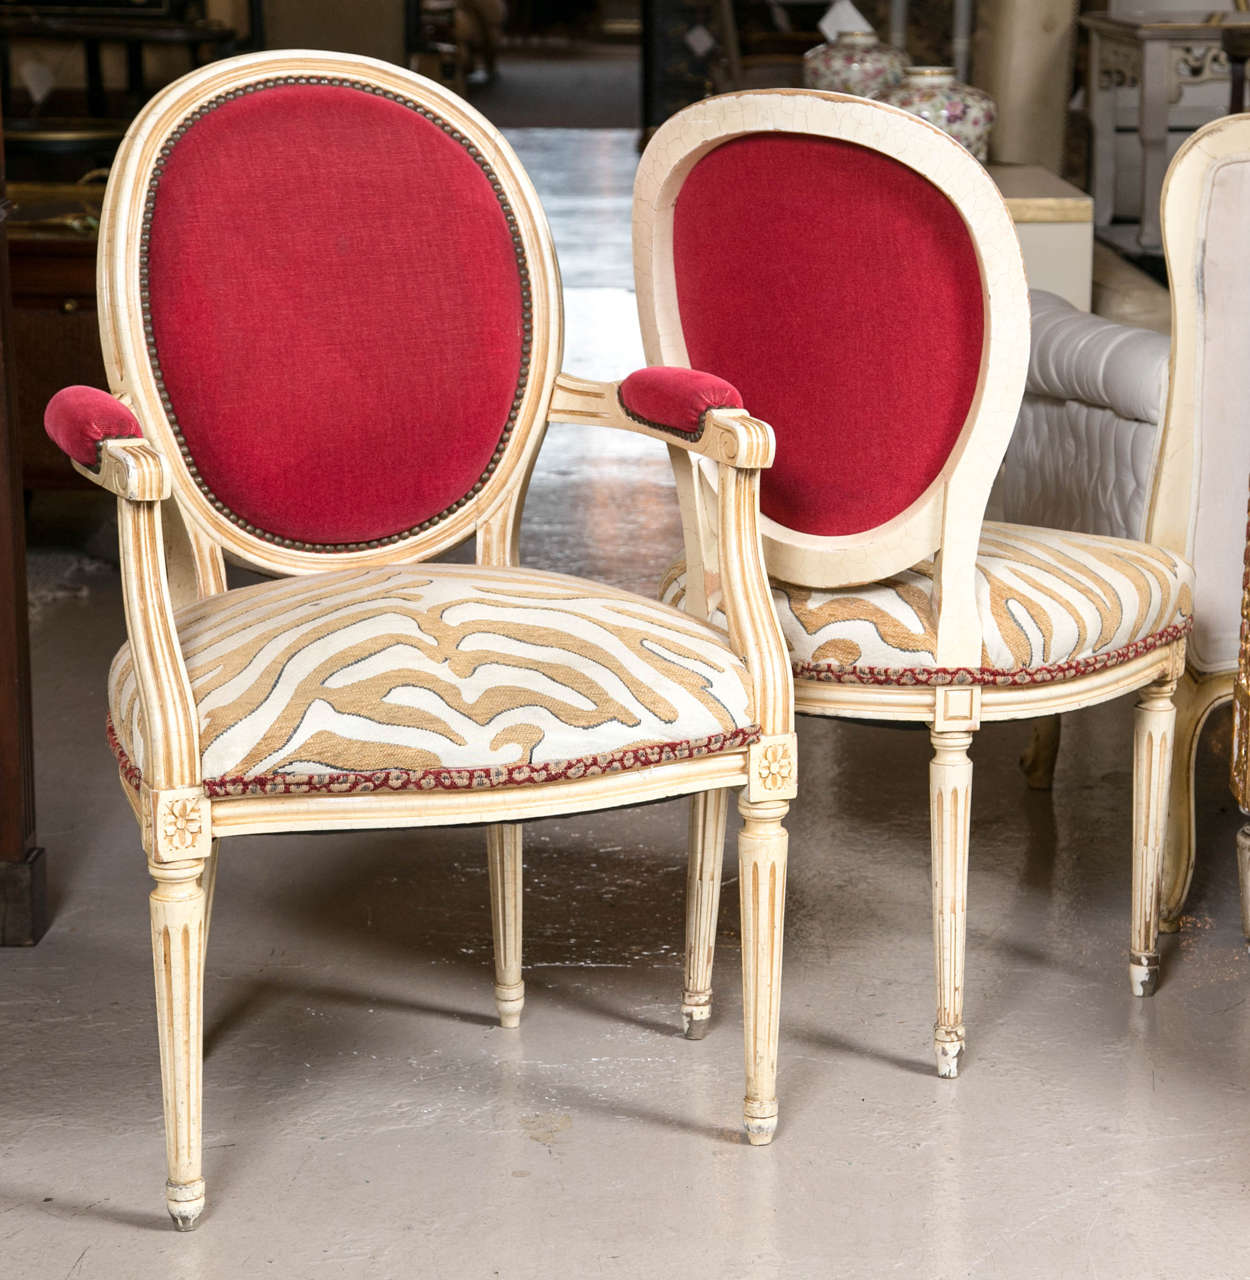 Set of eight Hollywood Regency style French dining chairs. These eight chairs are truly unique accentuating the albino zebra print on the seat and the red upholstery on the top of the back rests and arm rests adds an exciting contract to these Louis